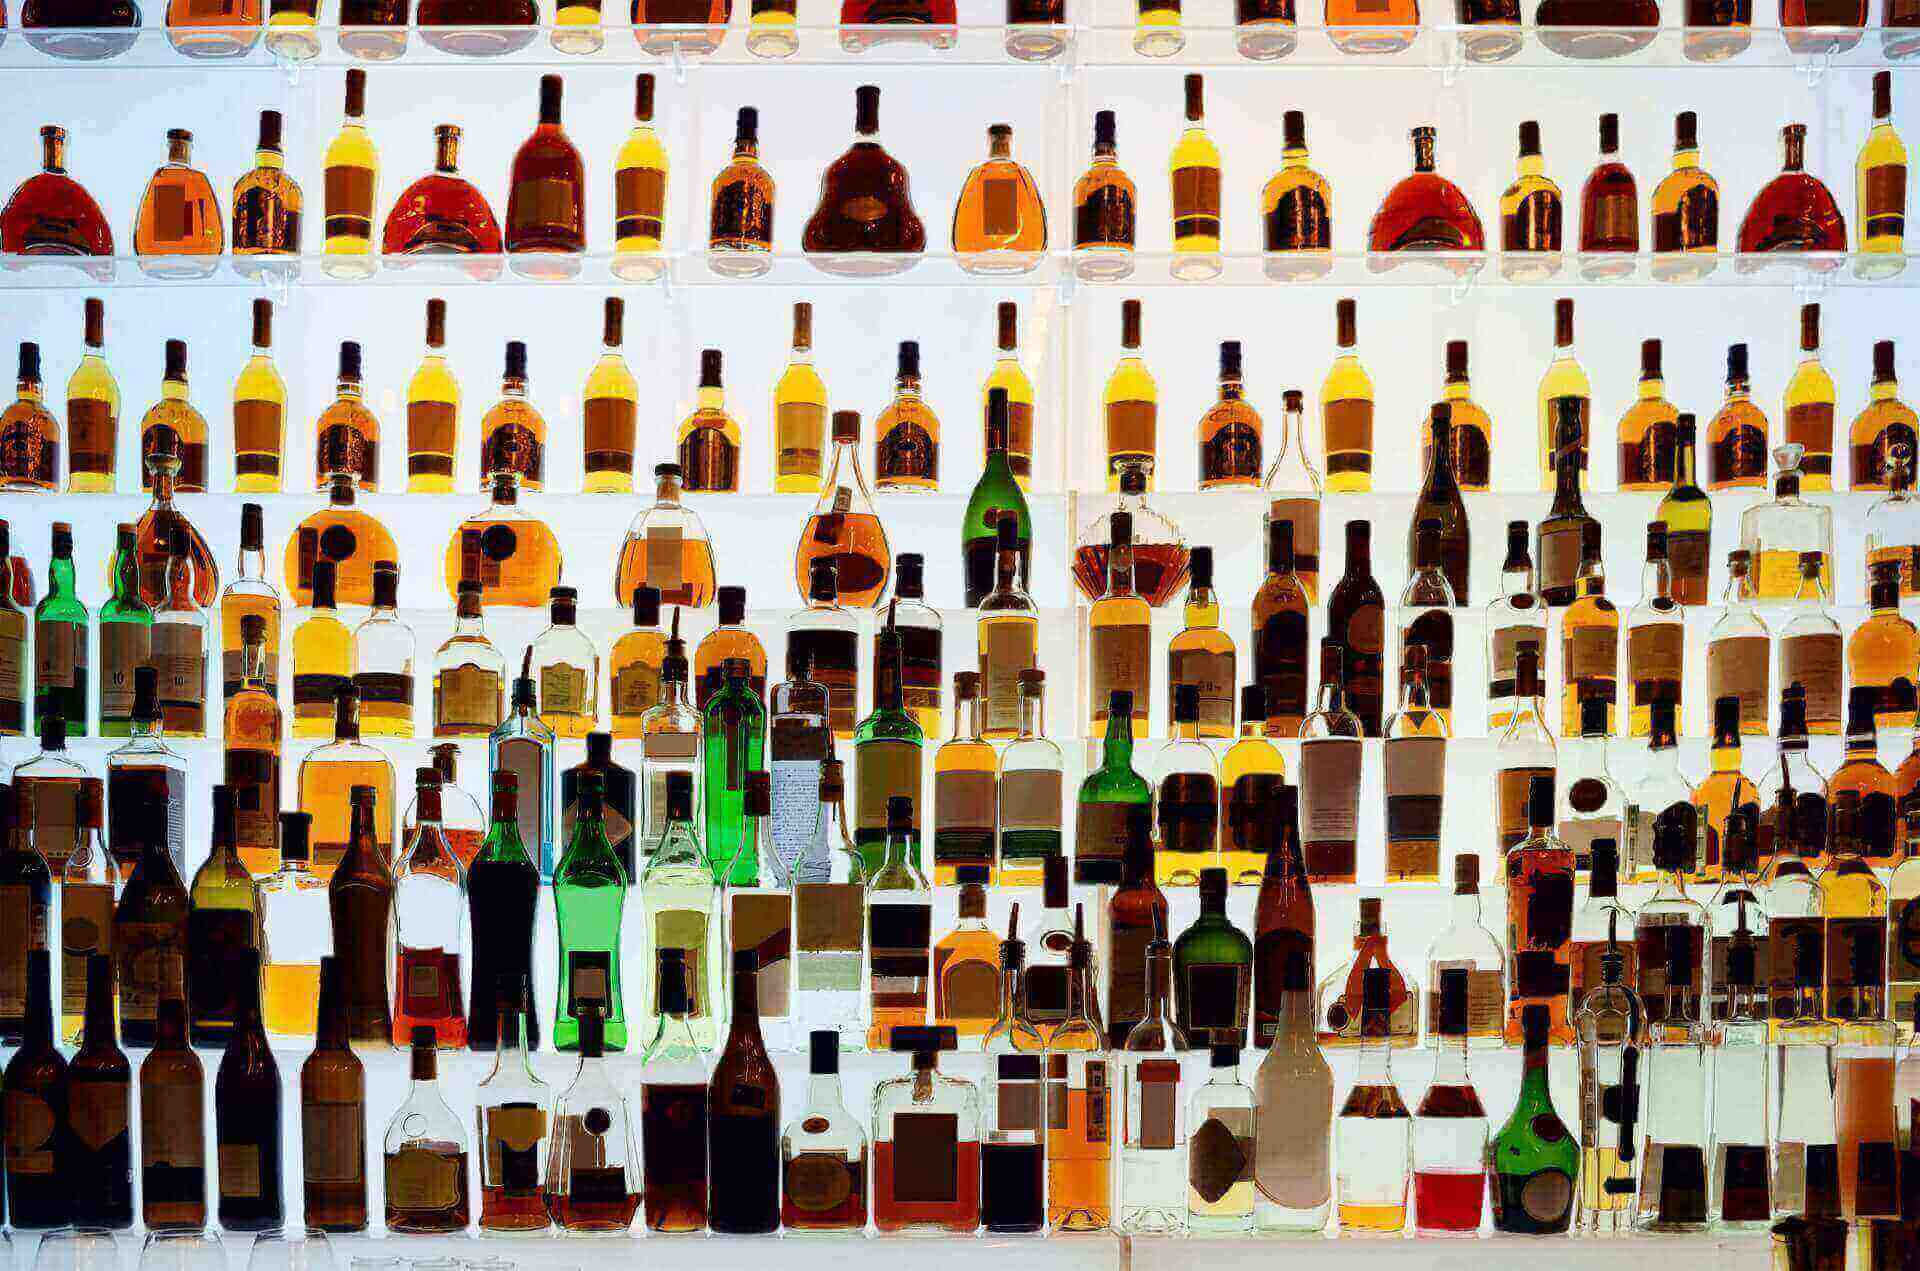 Top Shelf Liquor What To Know Before You Order That Drink